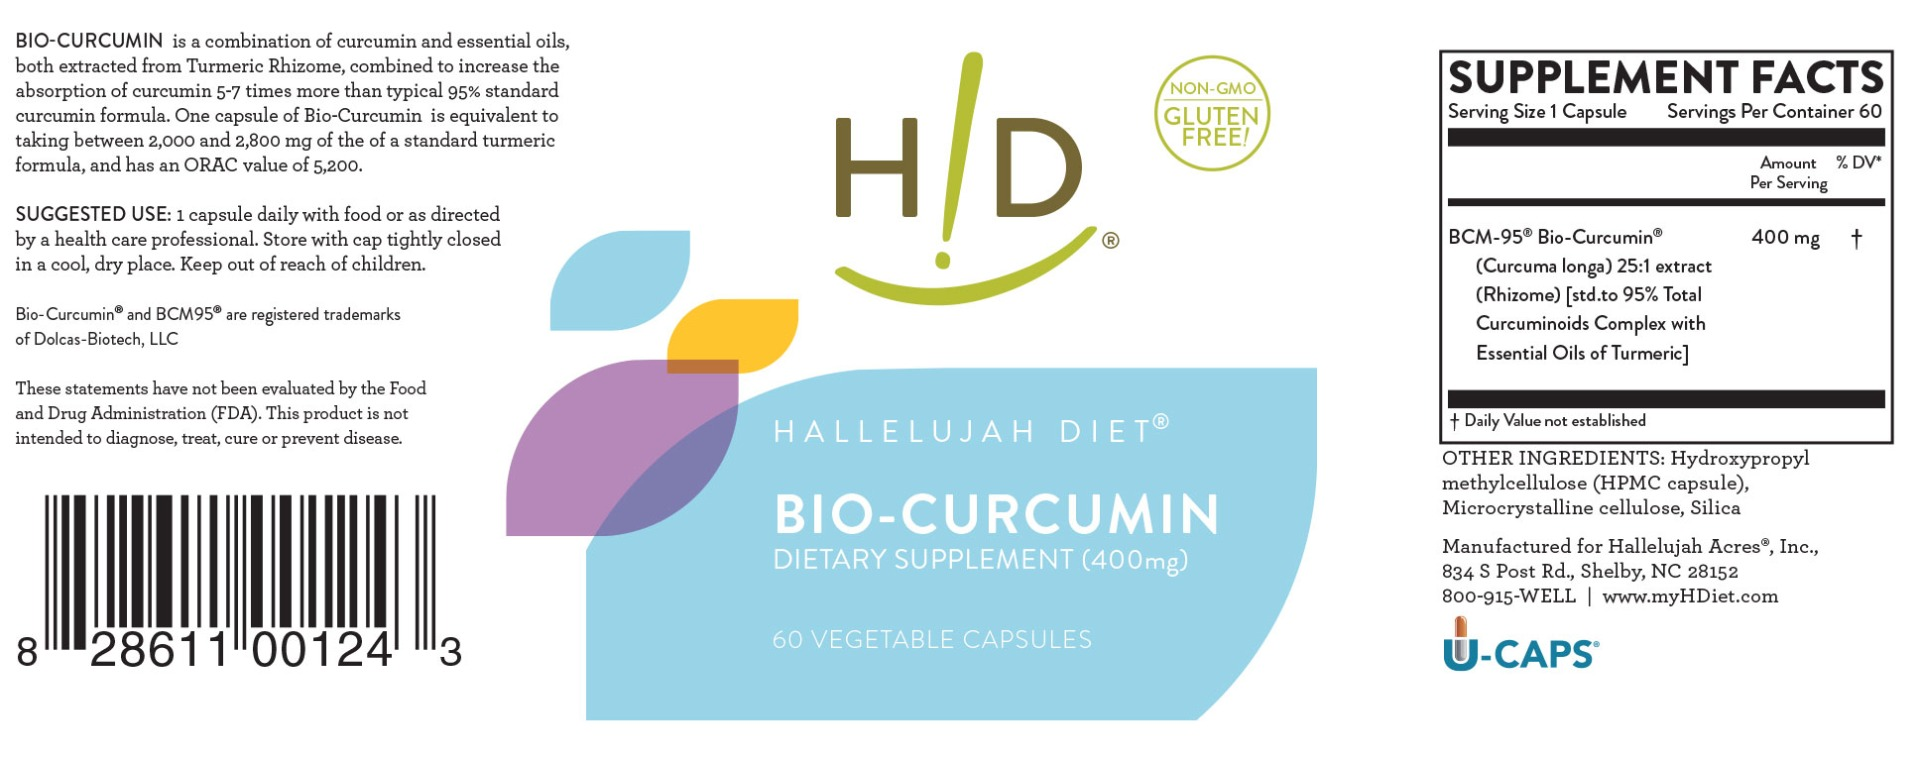 Hallelujah Diet BioCurcumin 400mg Label